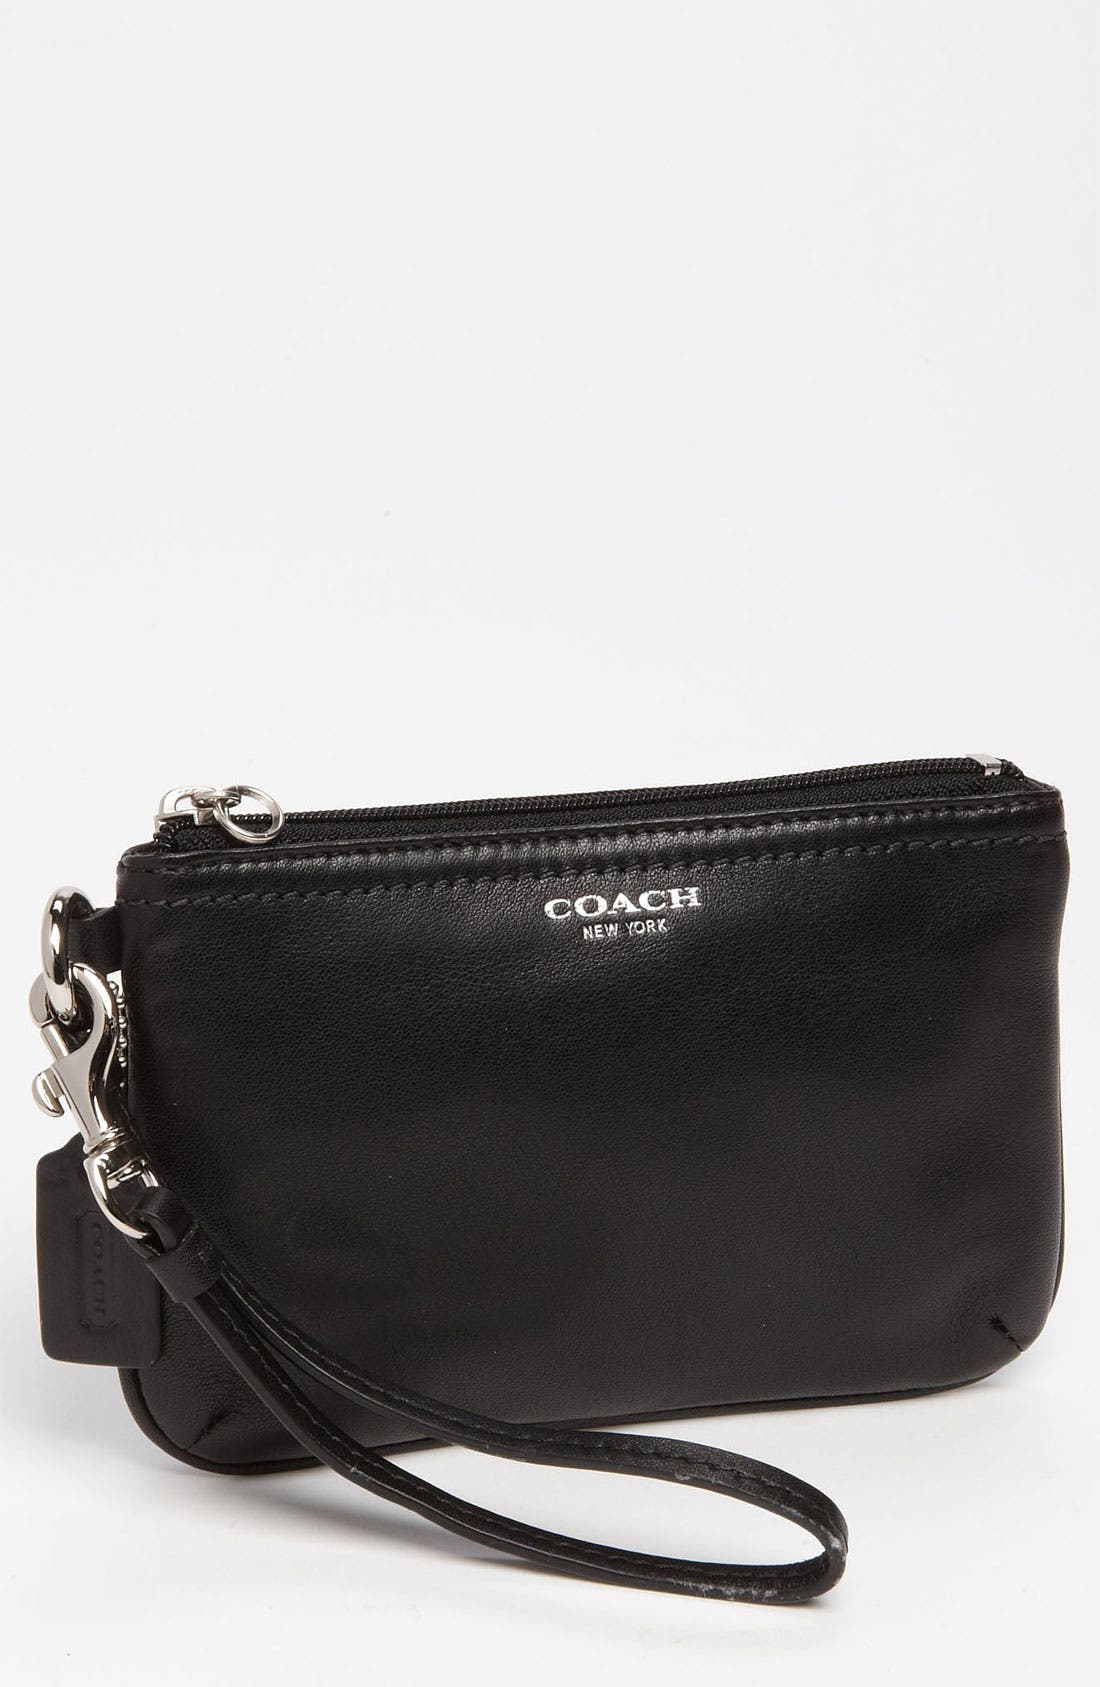 Main Image - COACH 'Legacy - Small' Leather Wristlet